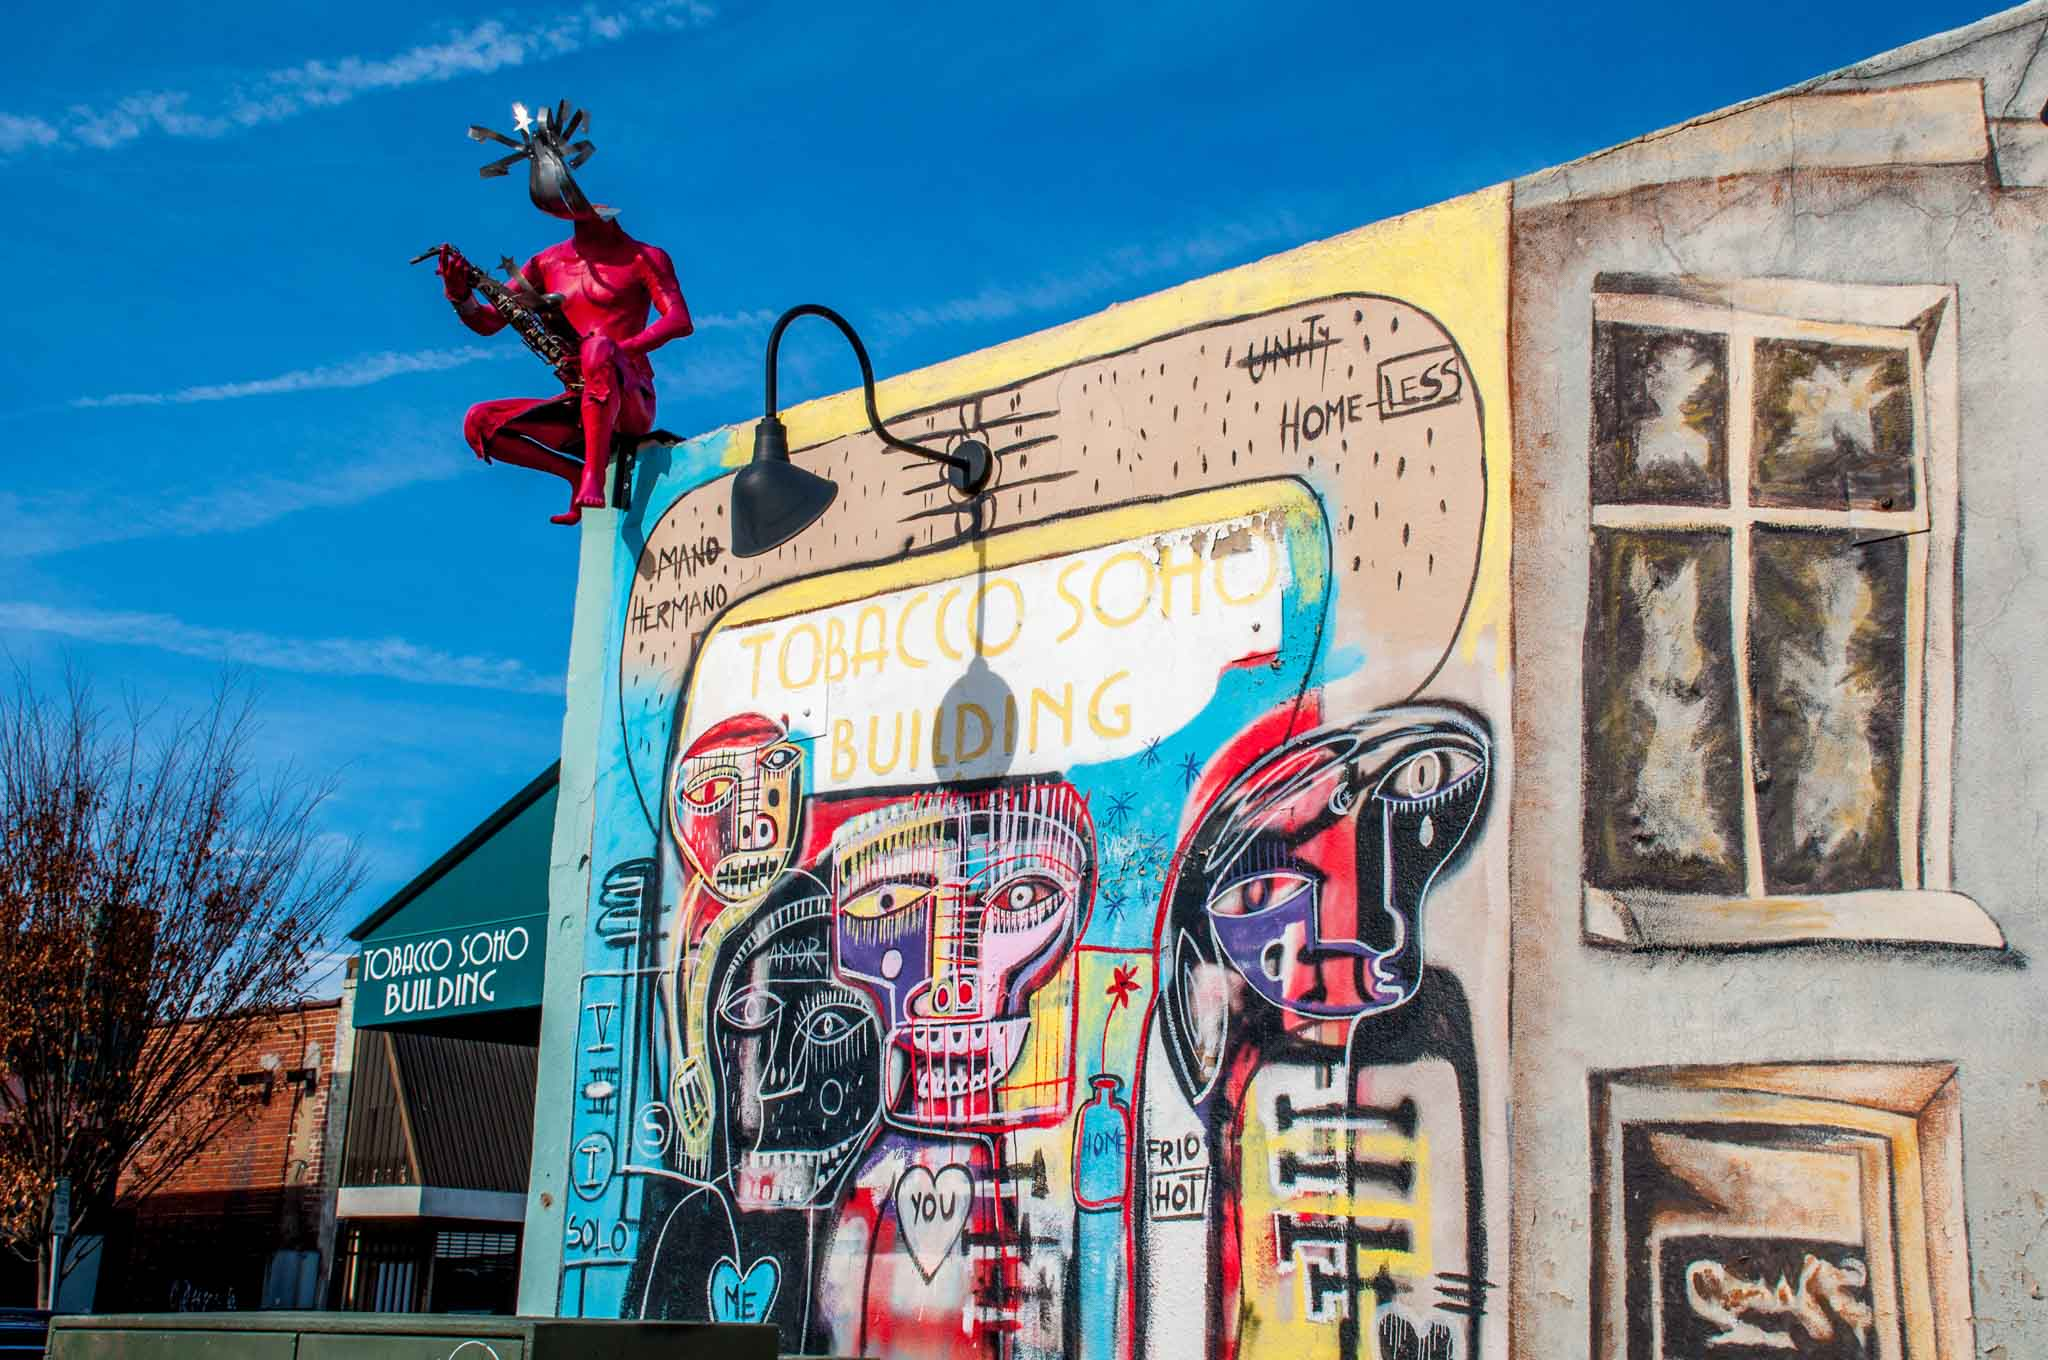 Street art mural showing colorful figures on the Tobacco Soho Building in Winston Salem NC